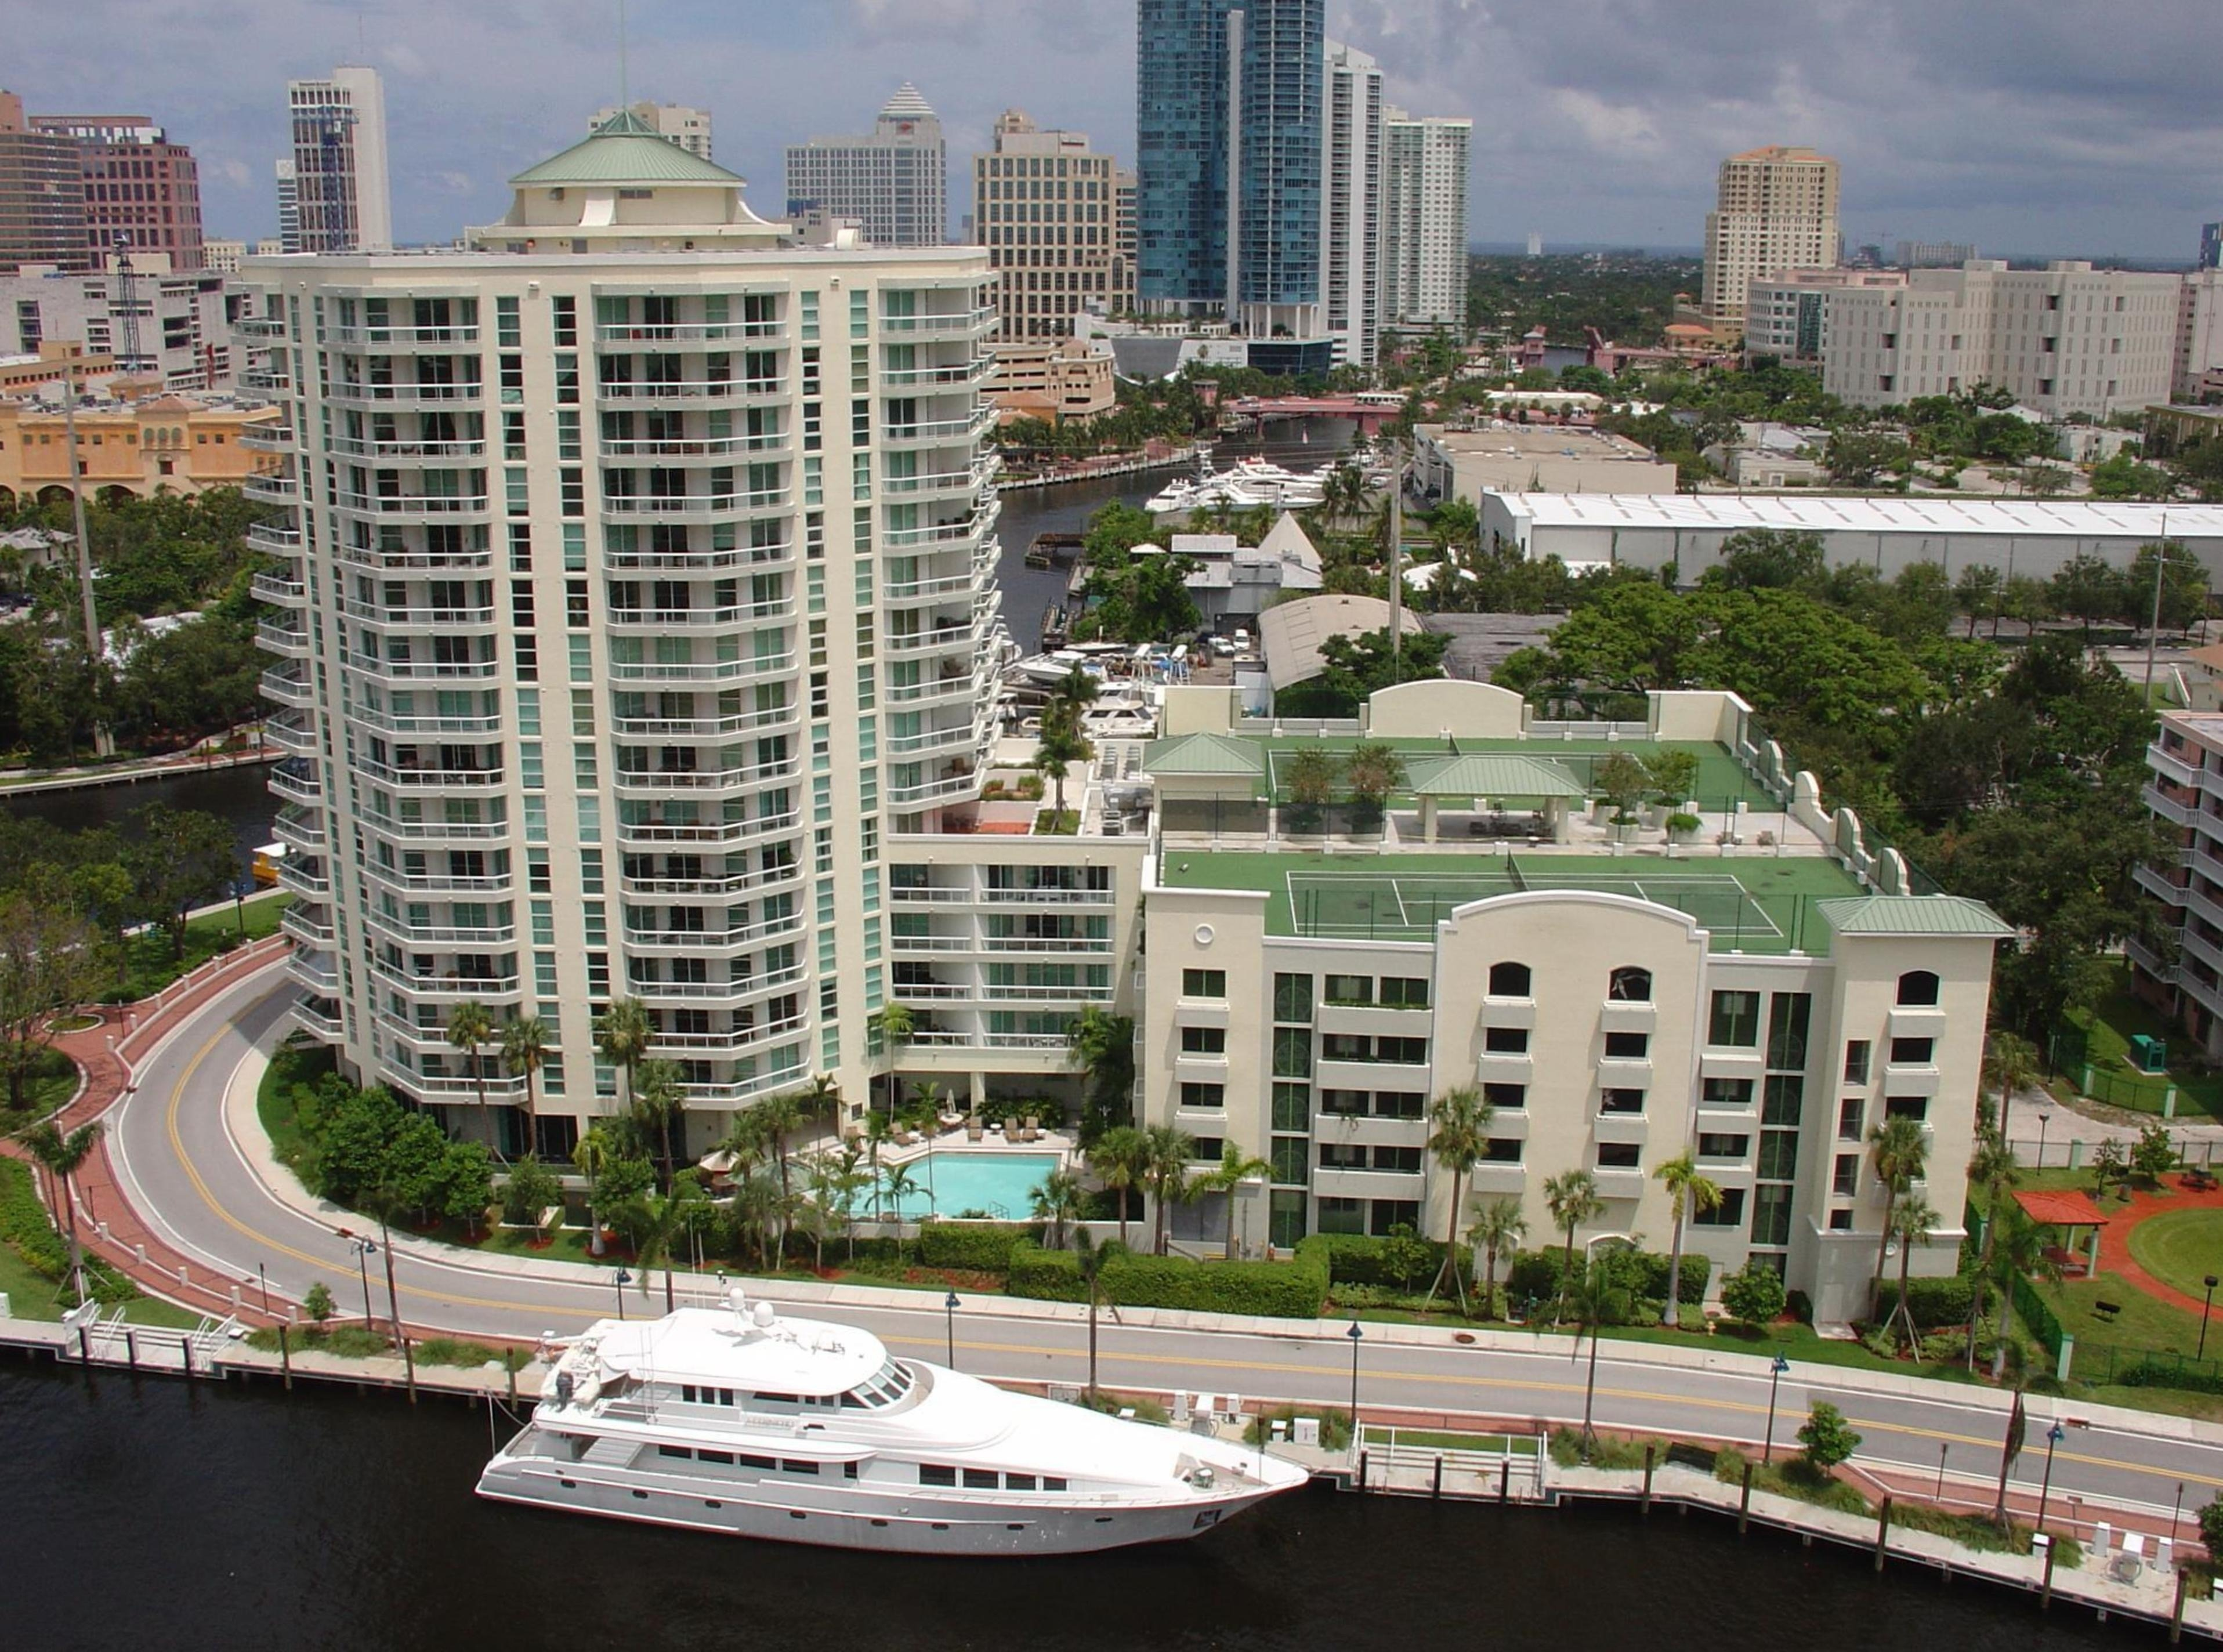 Esplanade Condos - Fort Lauderdale, FL Condos for Sale